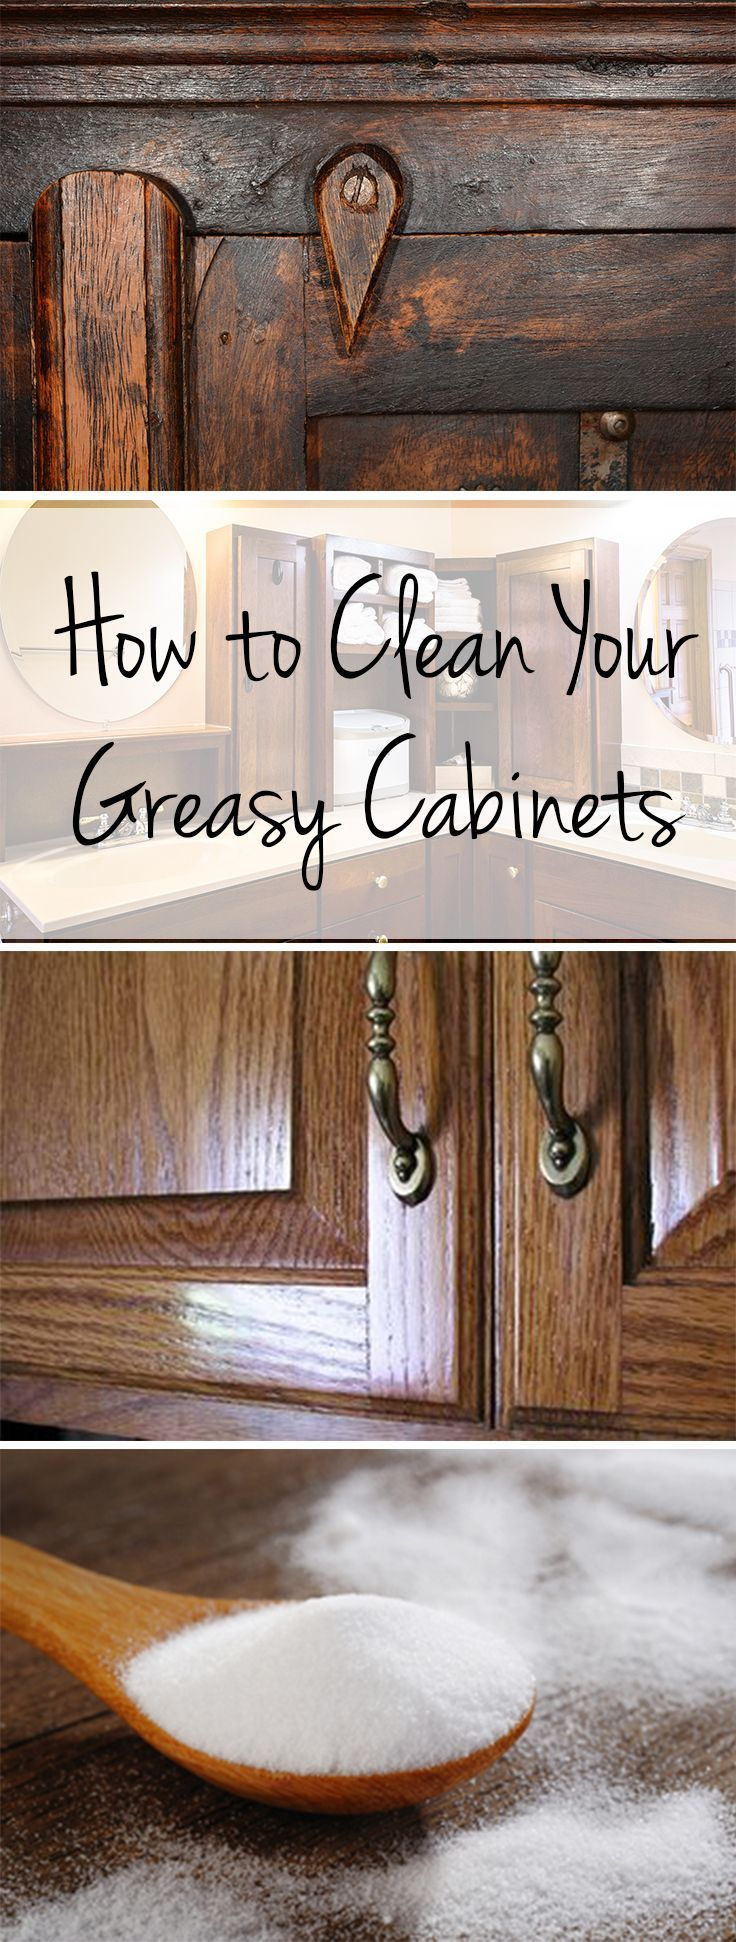 Cleaning tips, cleaning hacks, popular pin, clean home, clean your greasy cabinets, kitchen cleaning hacks, clean home.